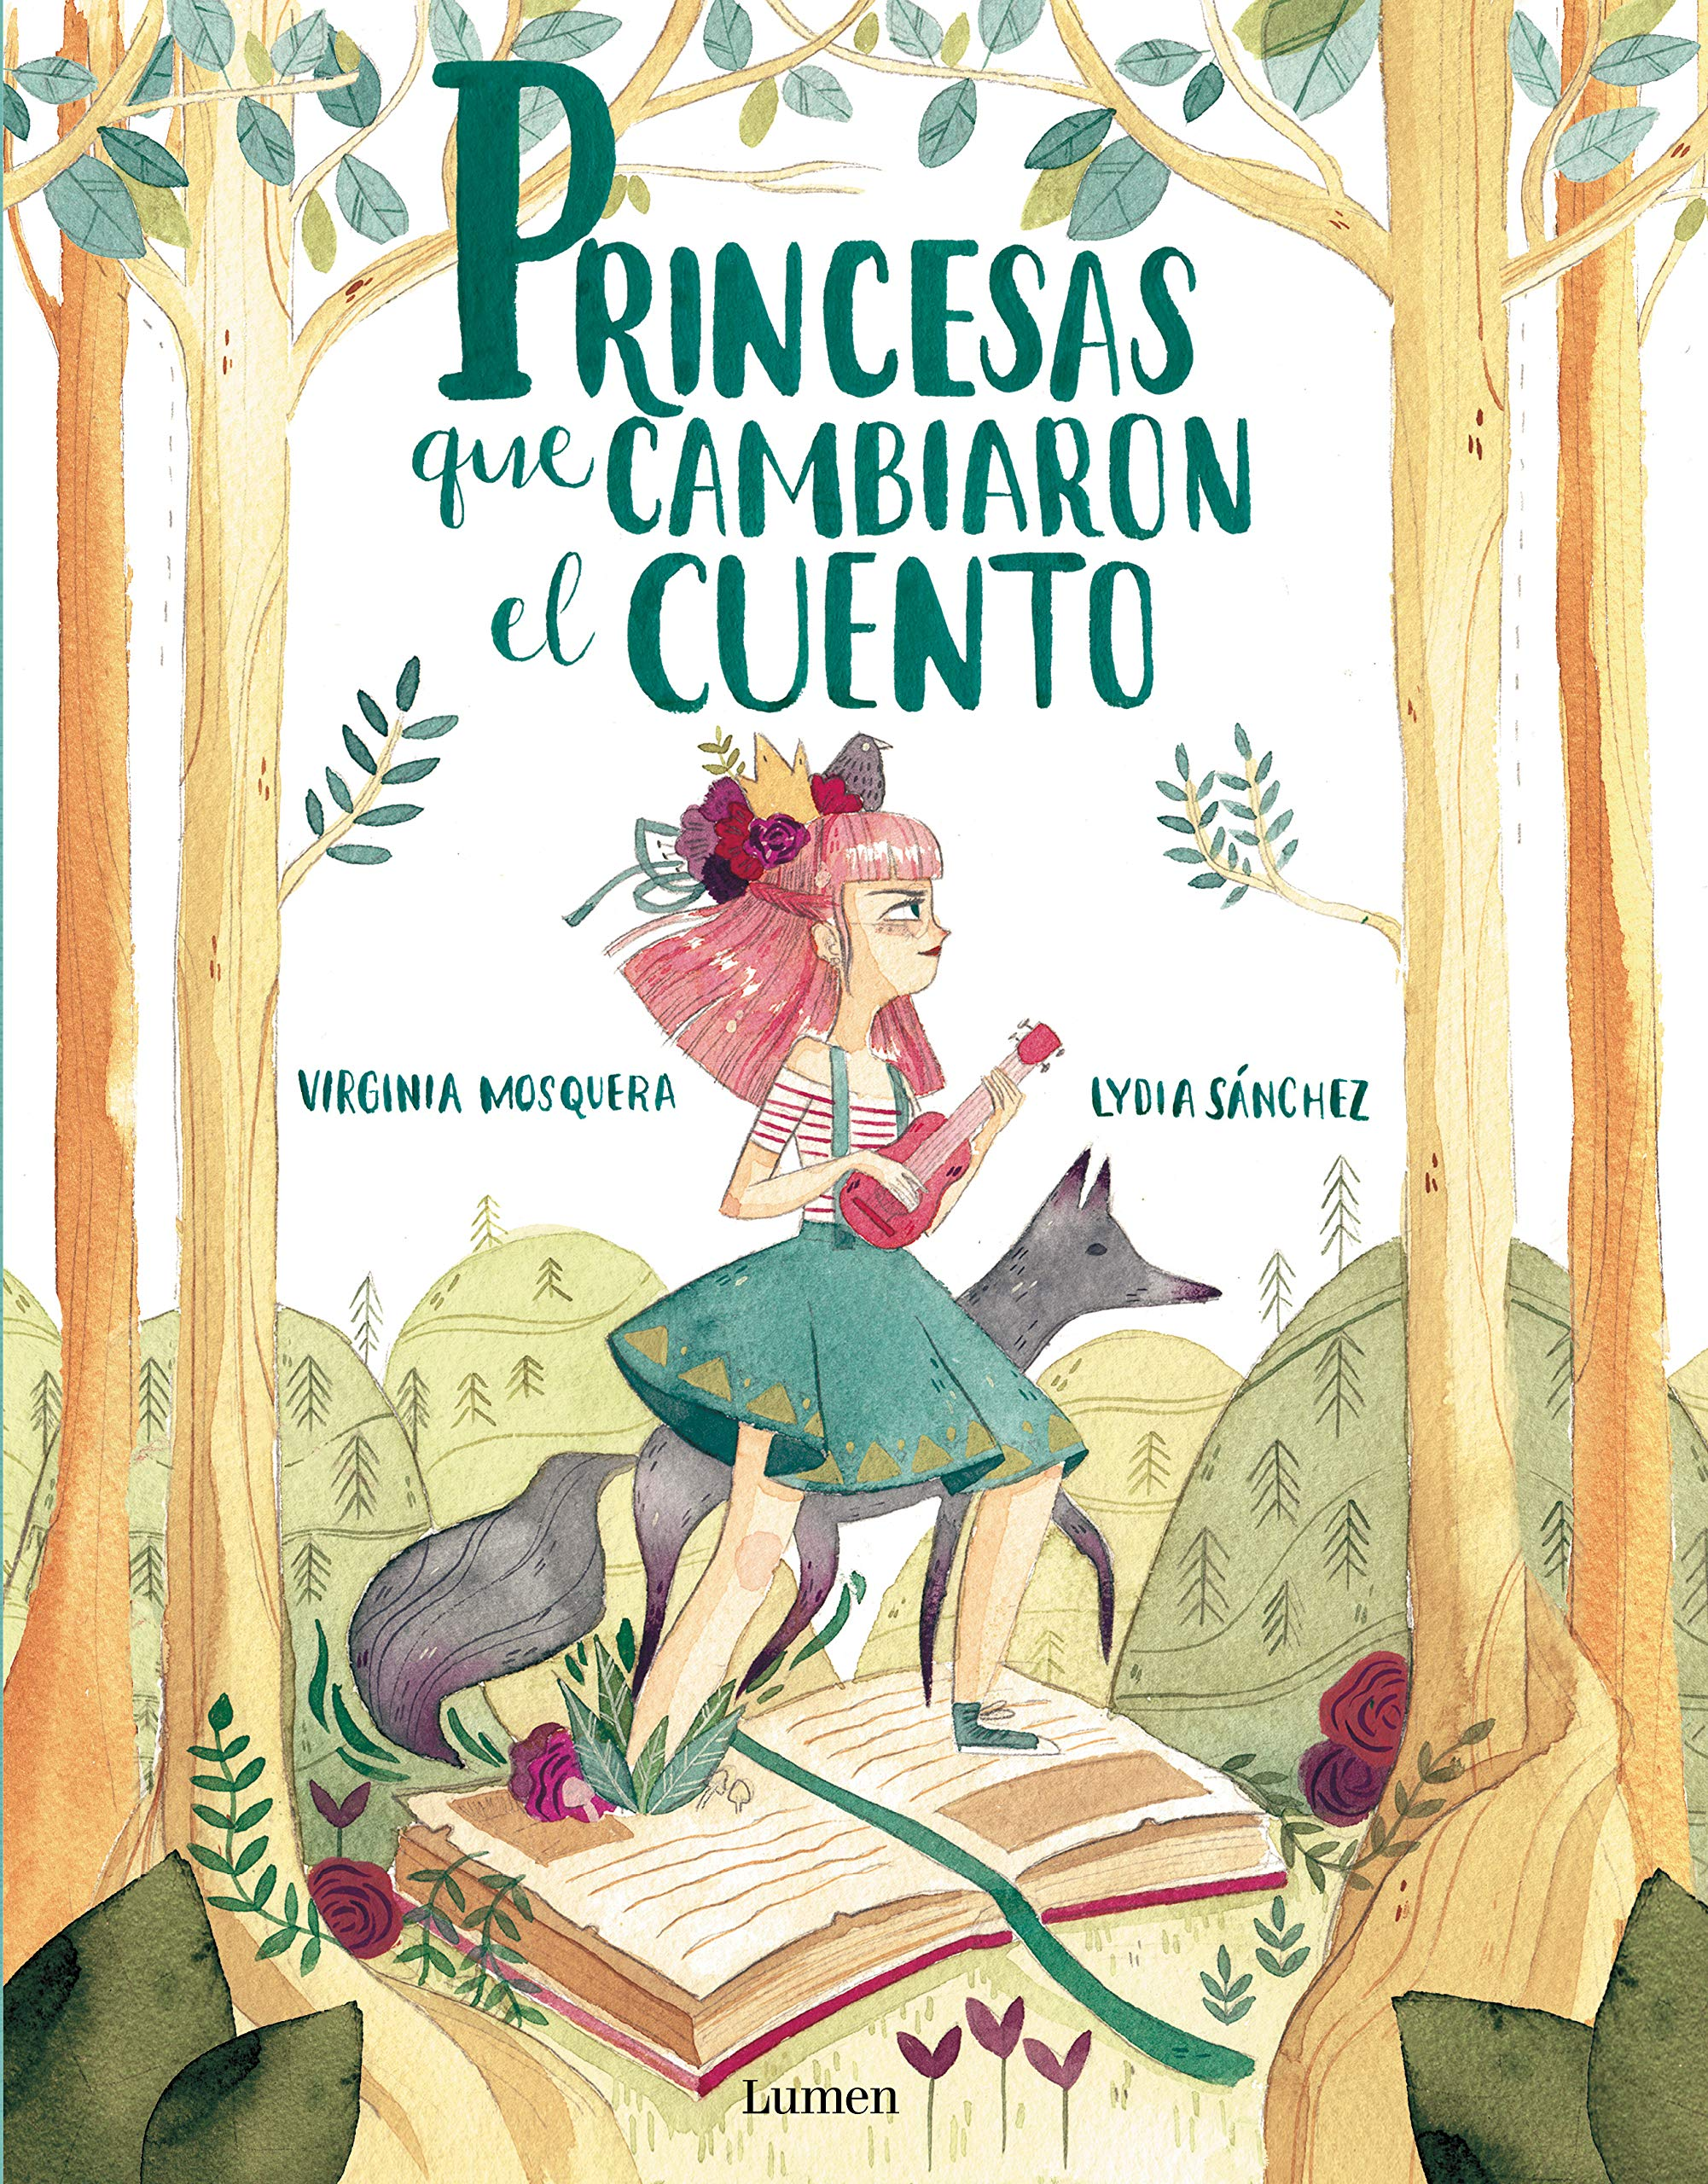 Princesas que cambiaron el cuento / Princesses that Changed the Fairy Tale (Spanish Edition): Virgina Mosquera, Lydia Sanchez: 9788448851064: Amazon.com: ...